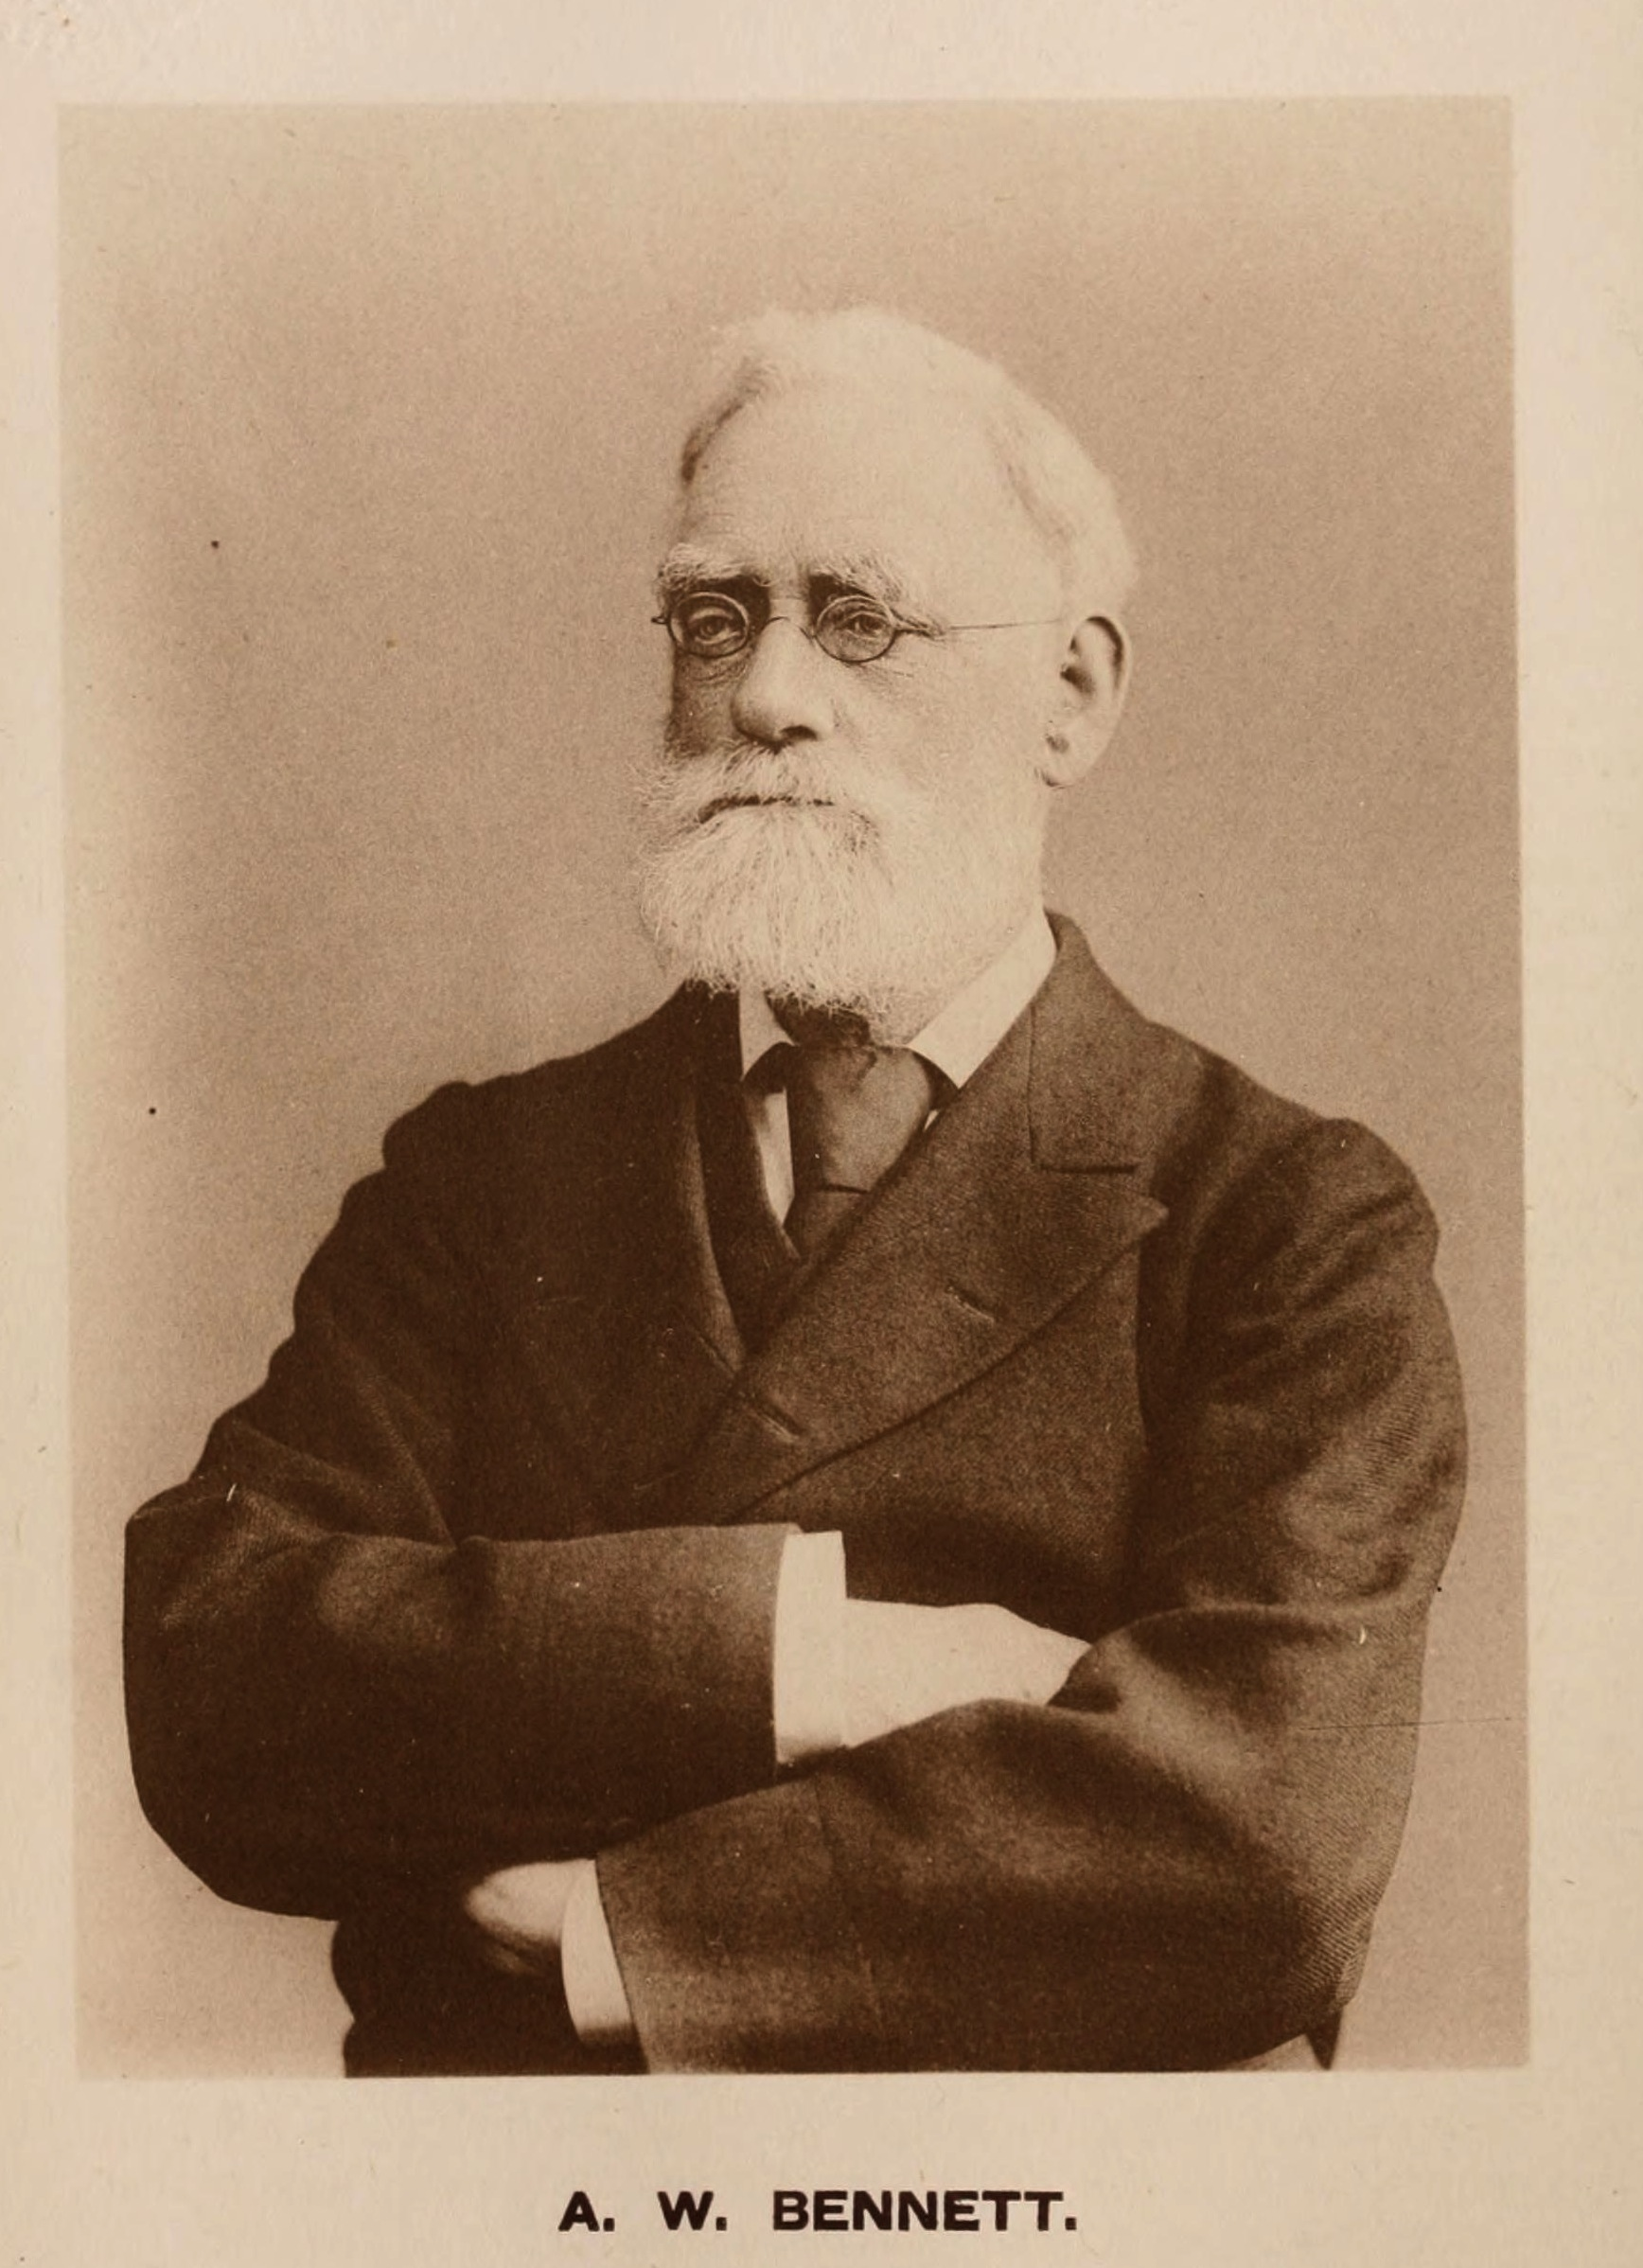 Image of Alfred William Bennett from Wikidata